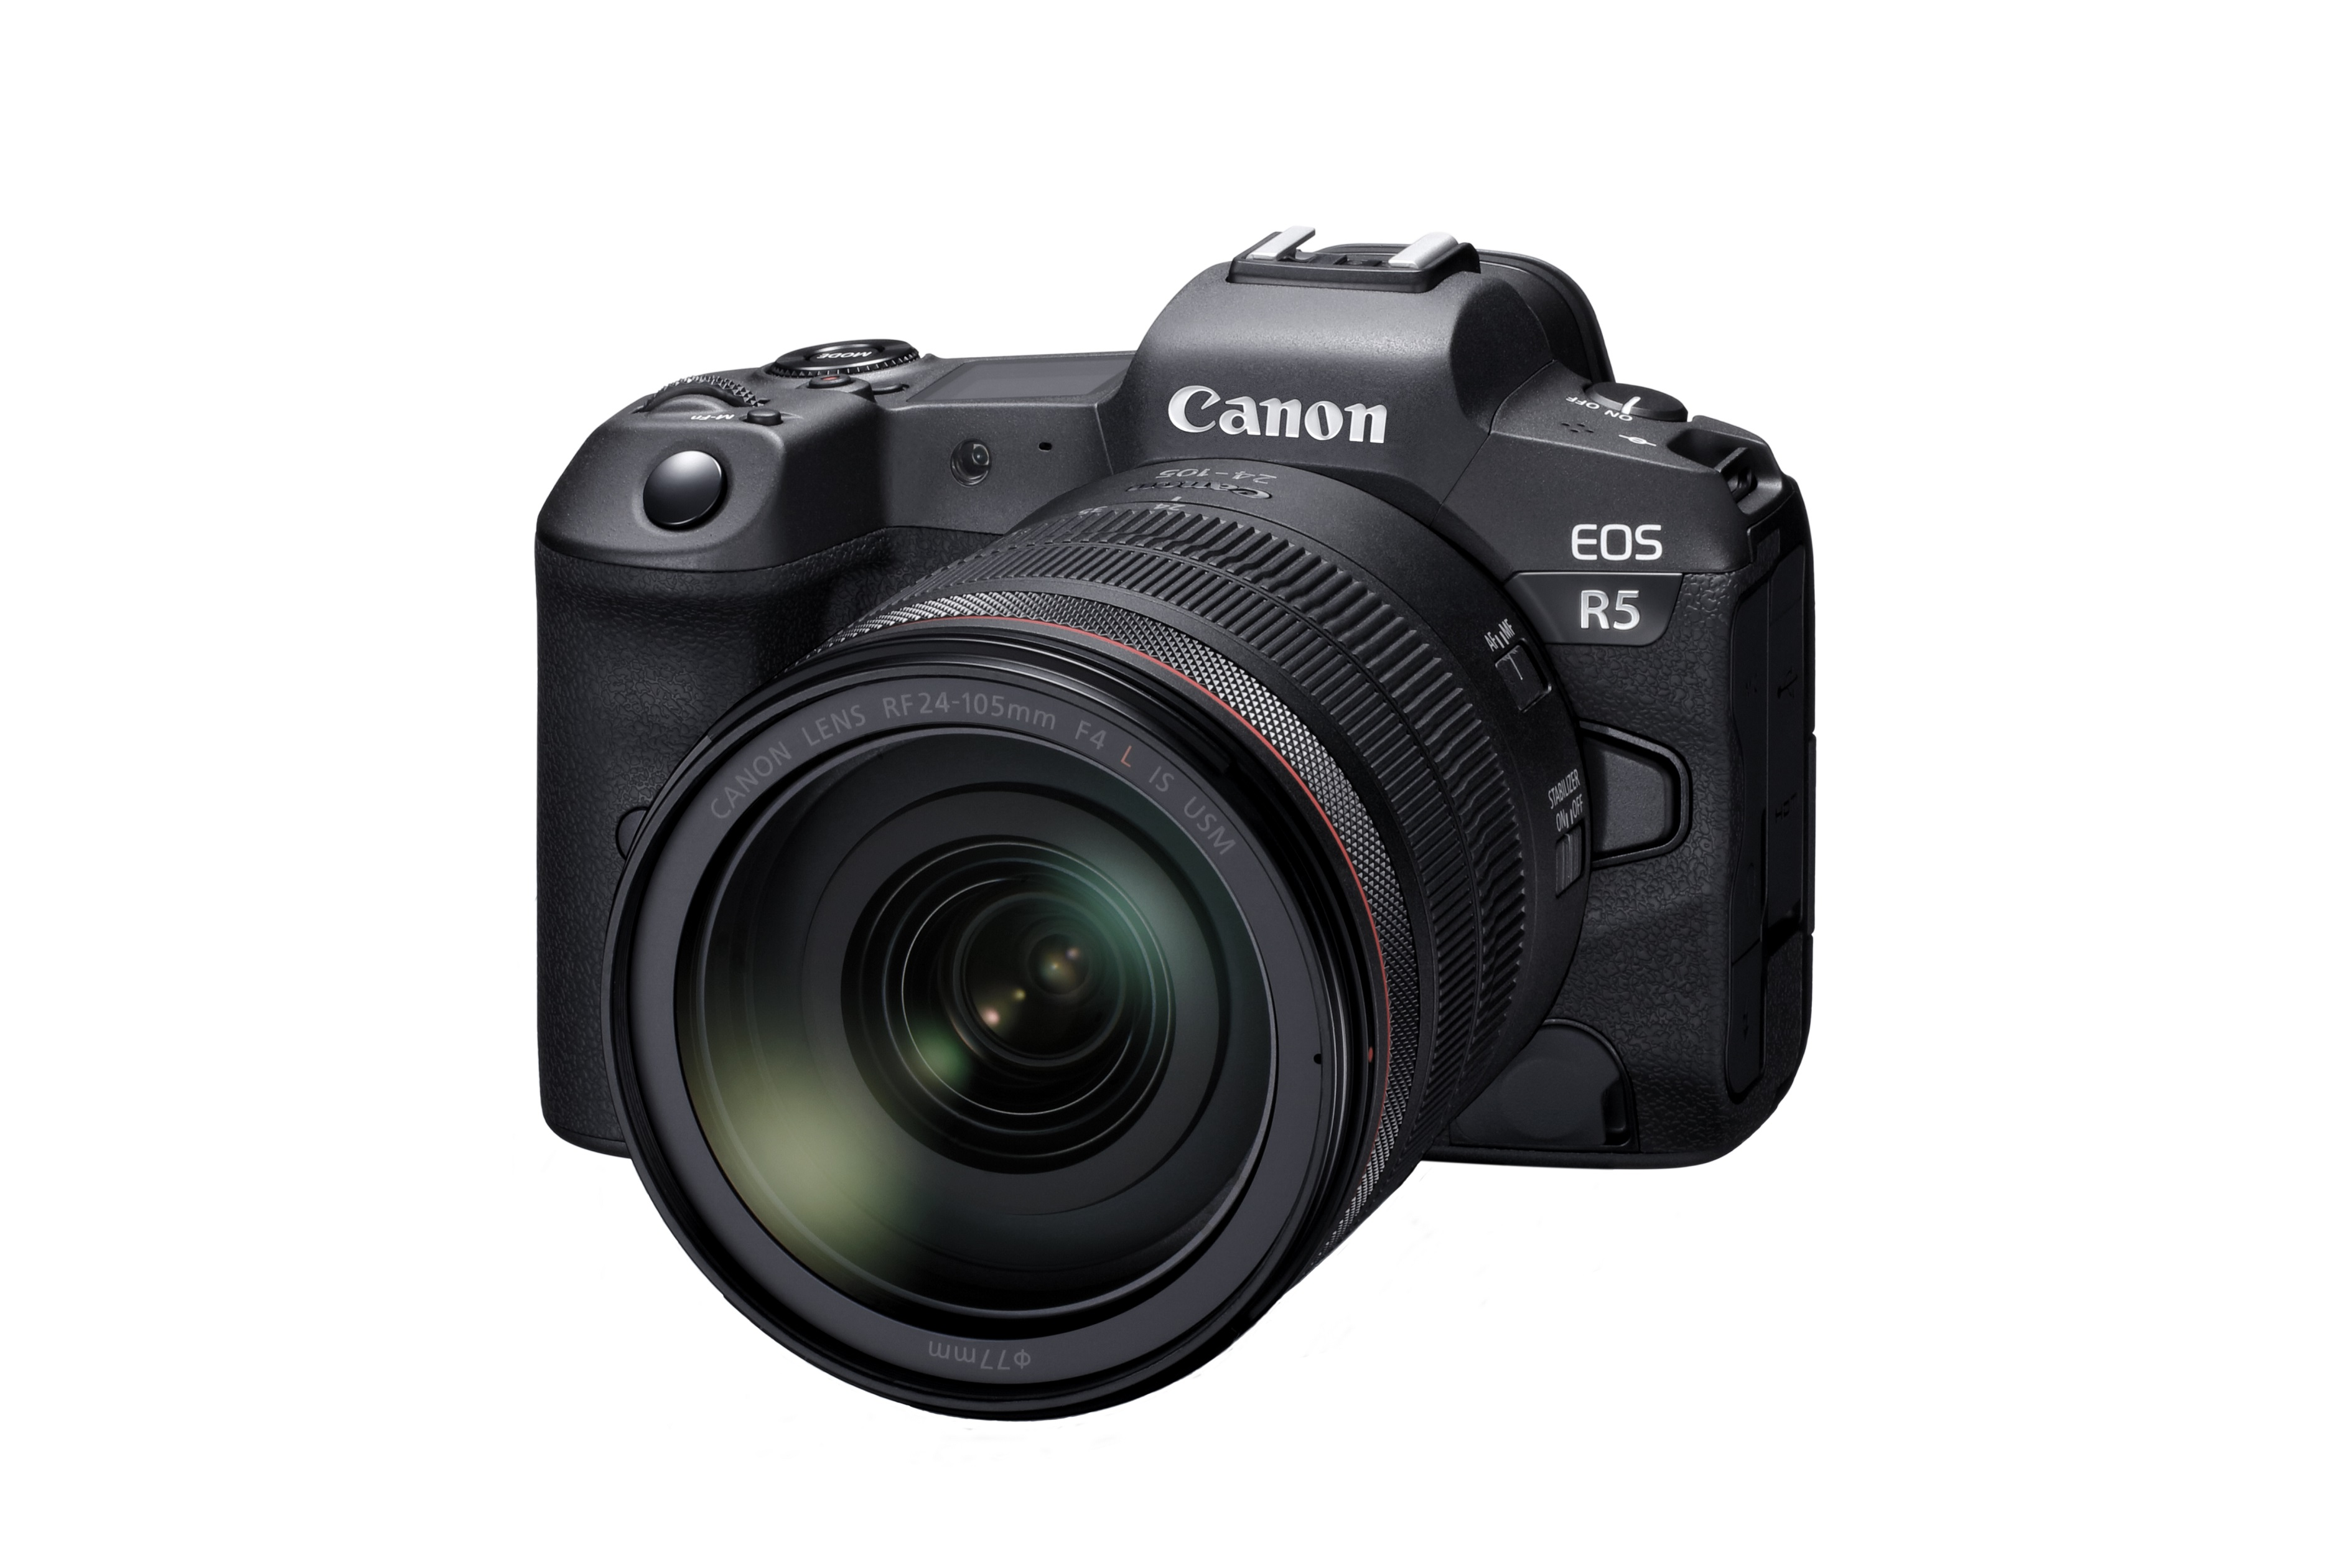 Canon Launches Brand New Revolutionary Full-frame Mirrorless Cameras EOS R5 and EOS R6 in India